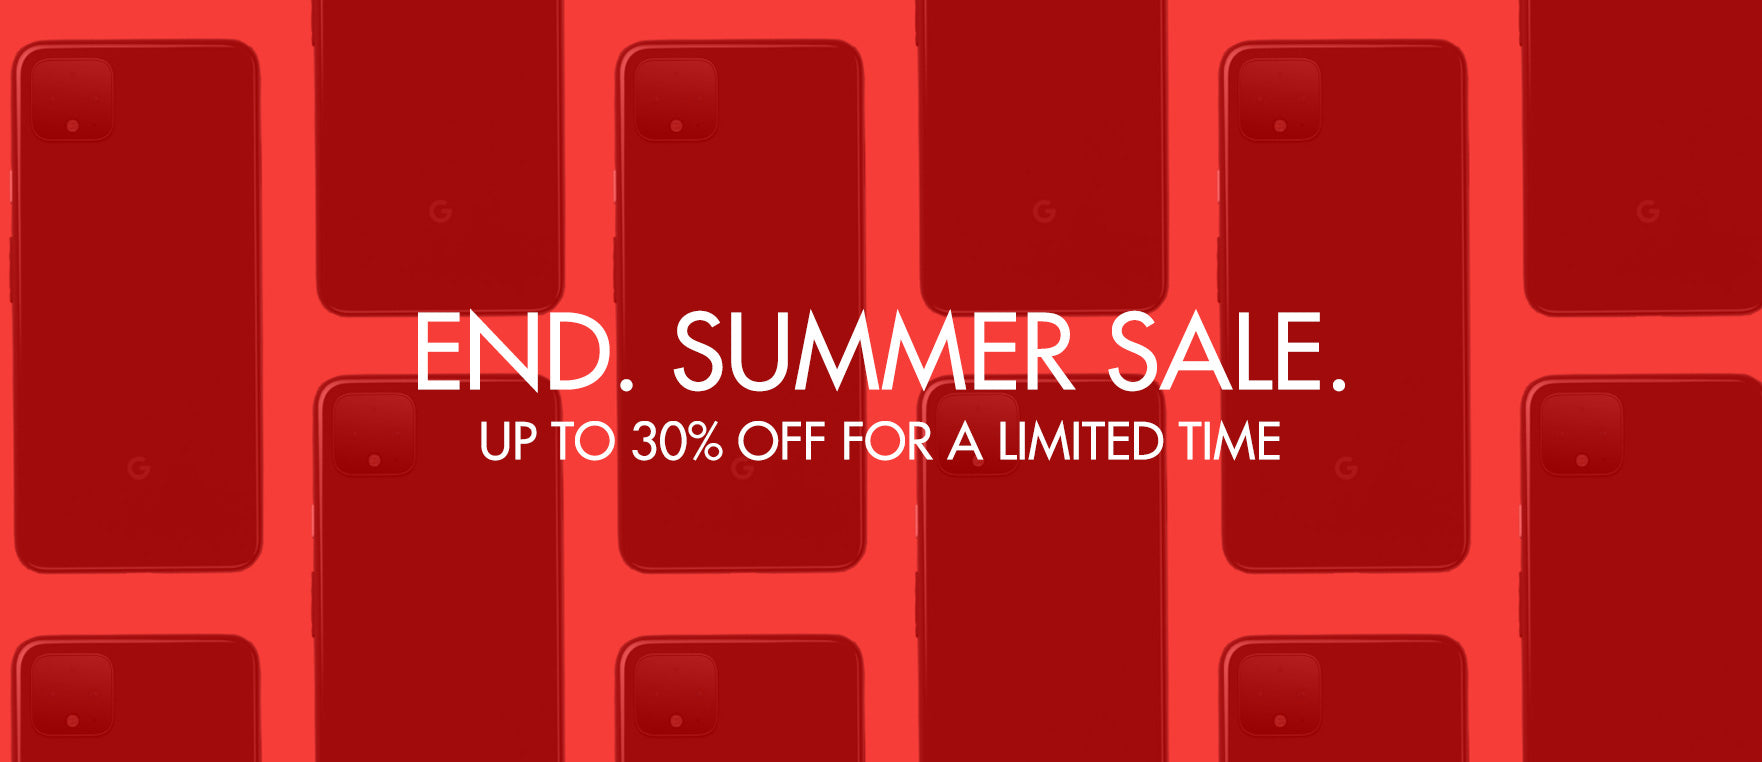 Omerta End of Summer Sale - Up to 30% off selected handsets.